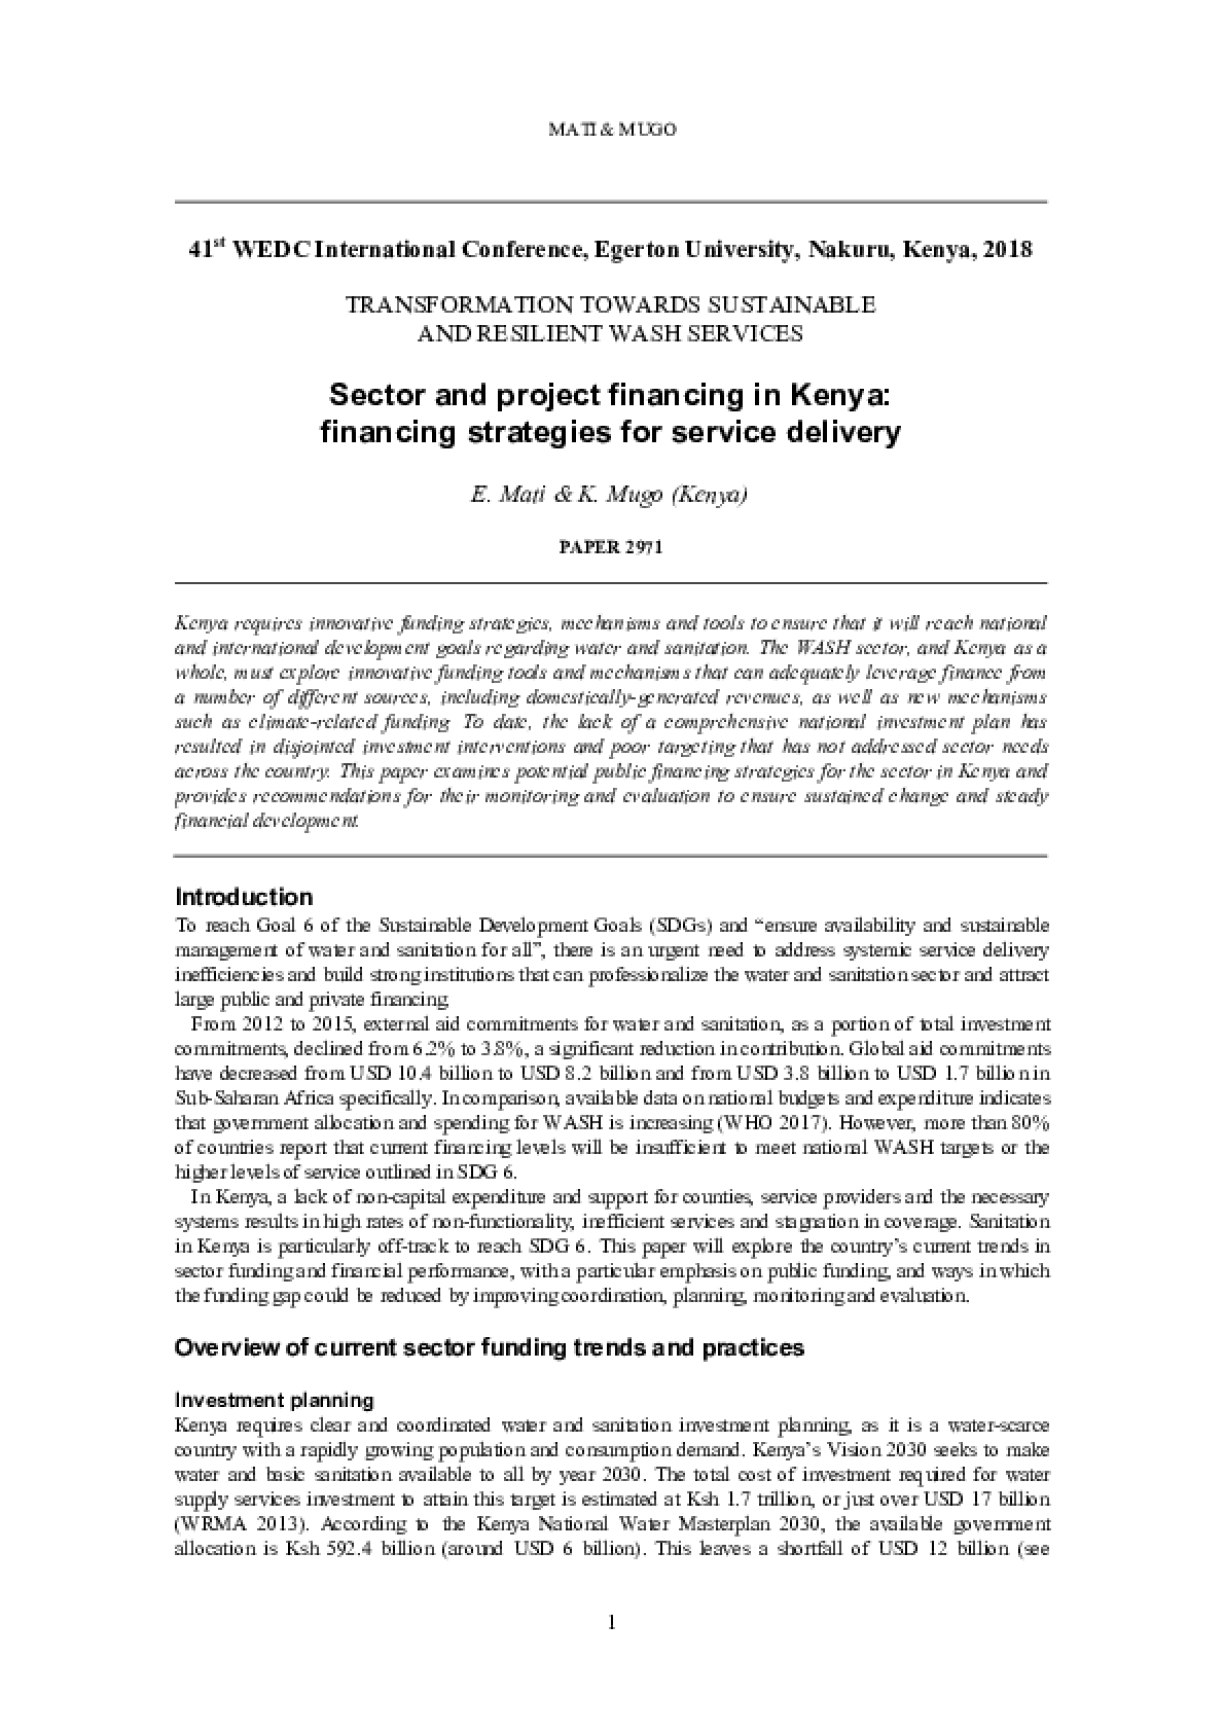 Sector and Project Financing in Kenya: Financing Strategies for Service Delivery